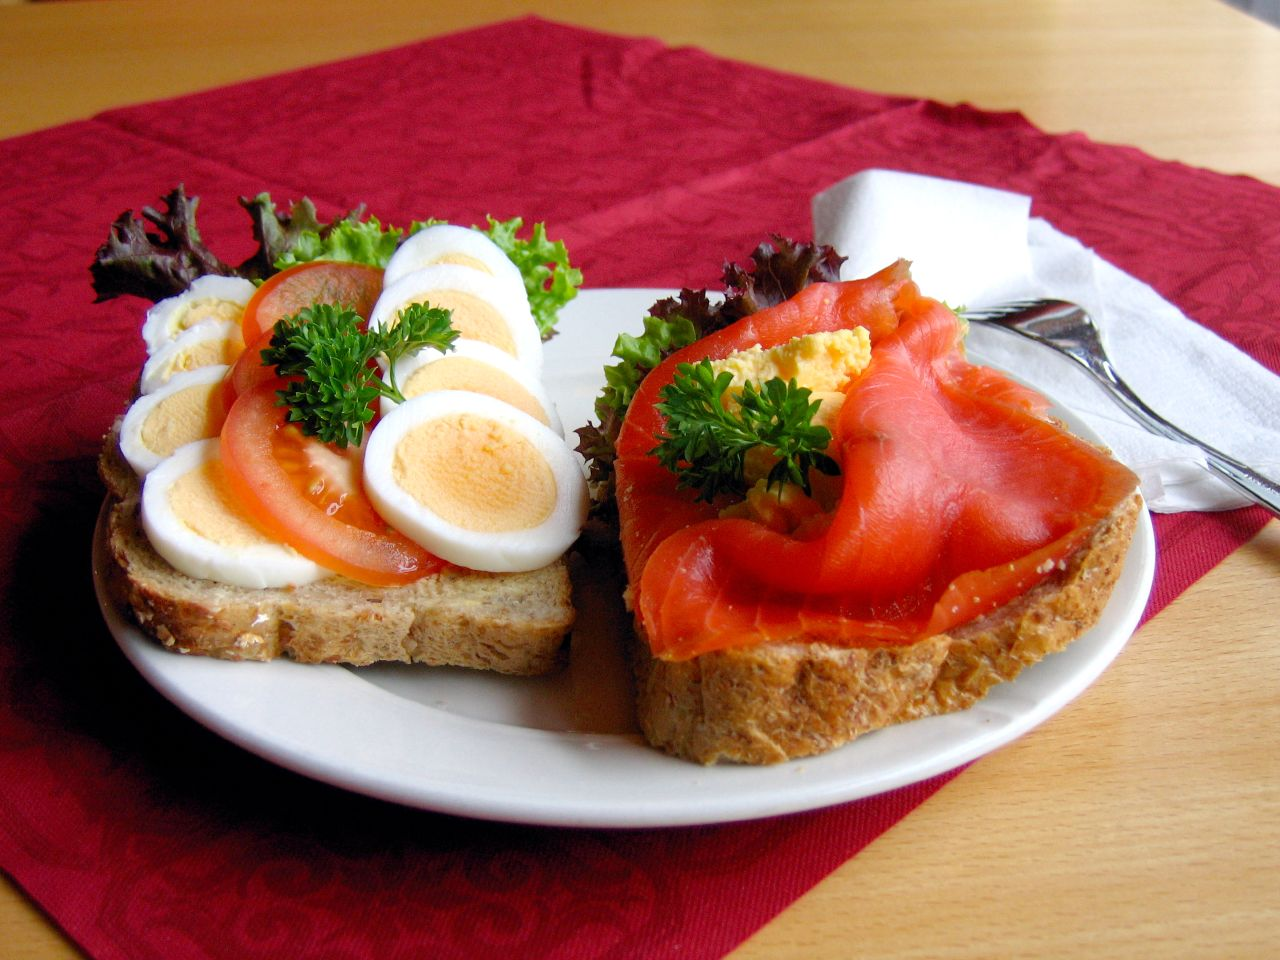 File:Norwegian.open.sandwich-01.jpg - Wikipedia, the free encyclopedia